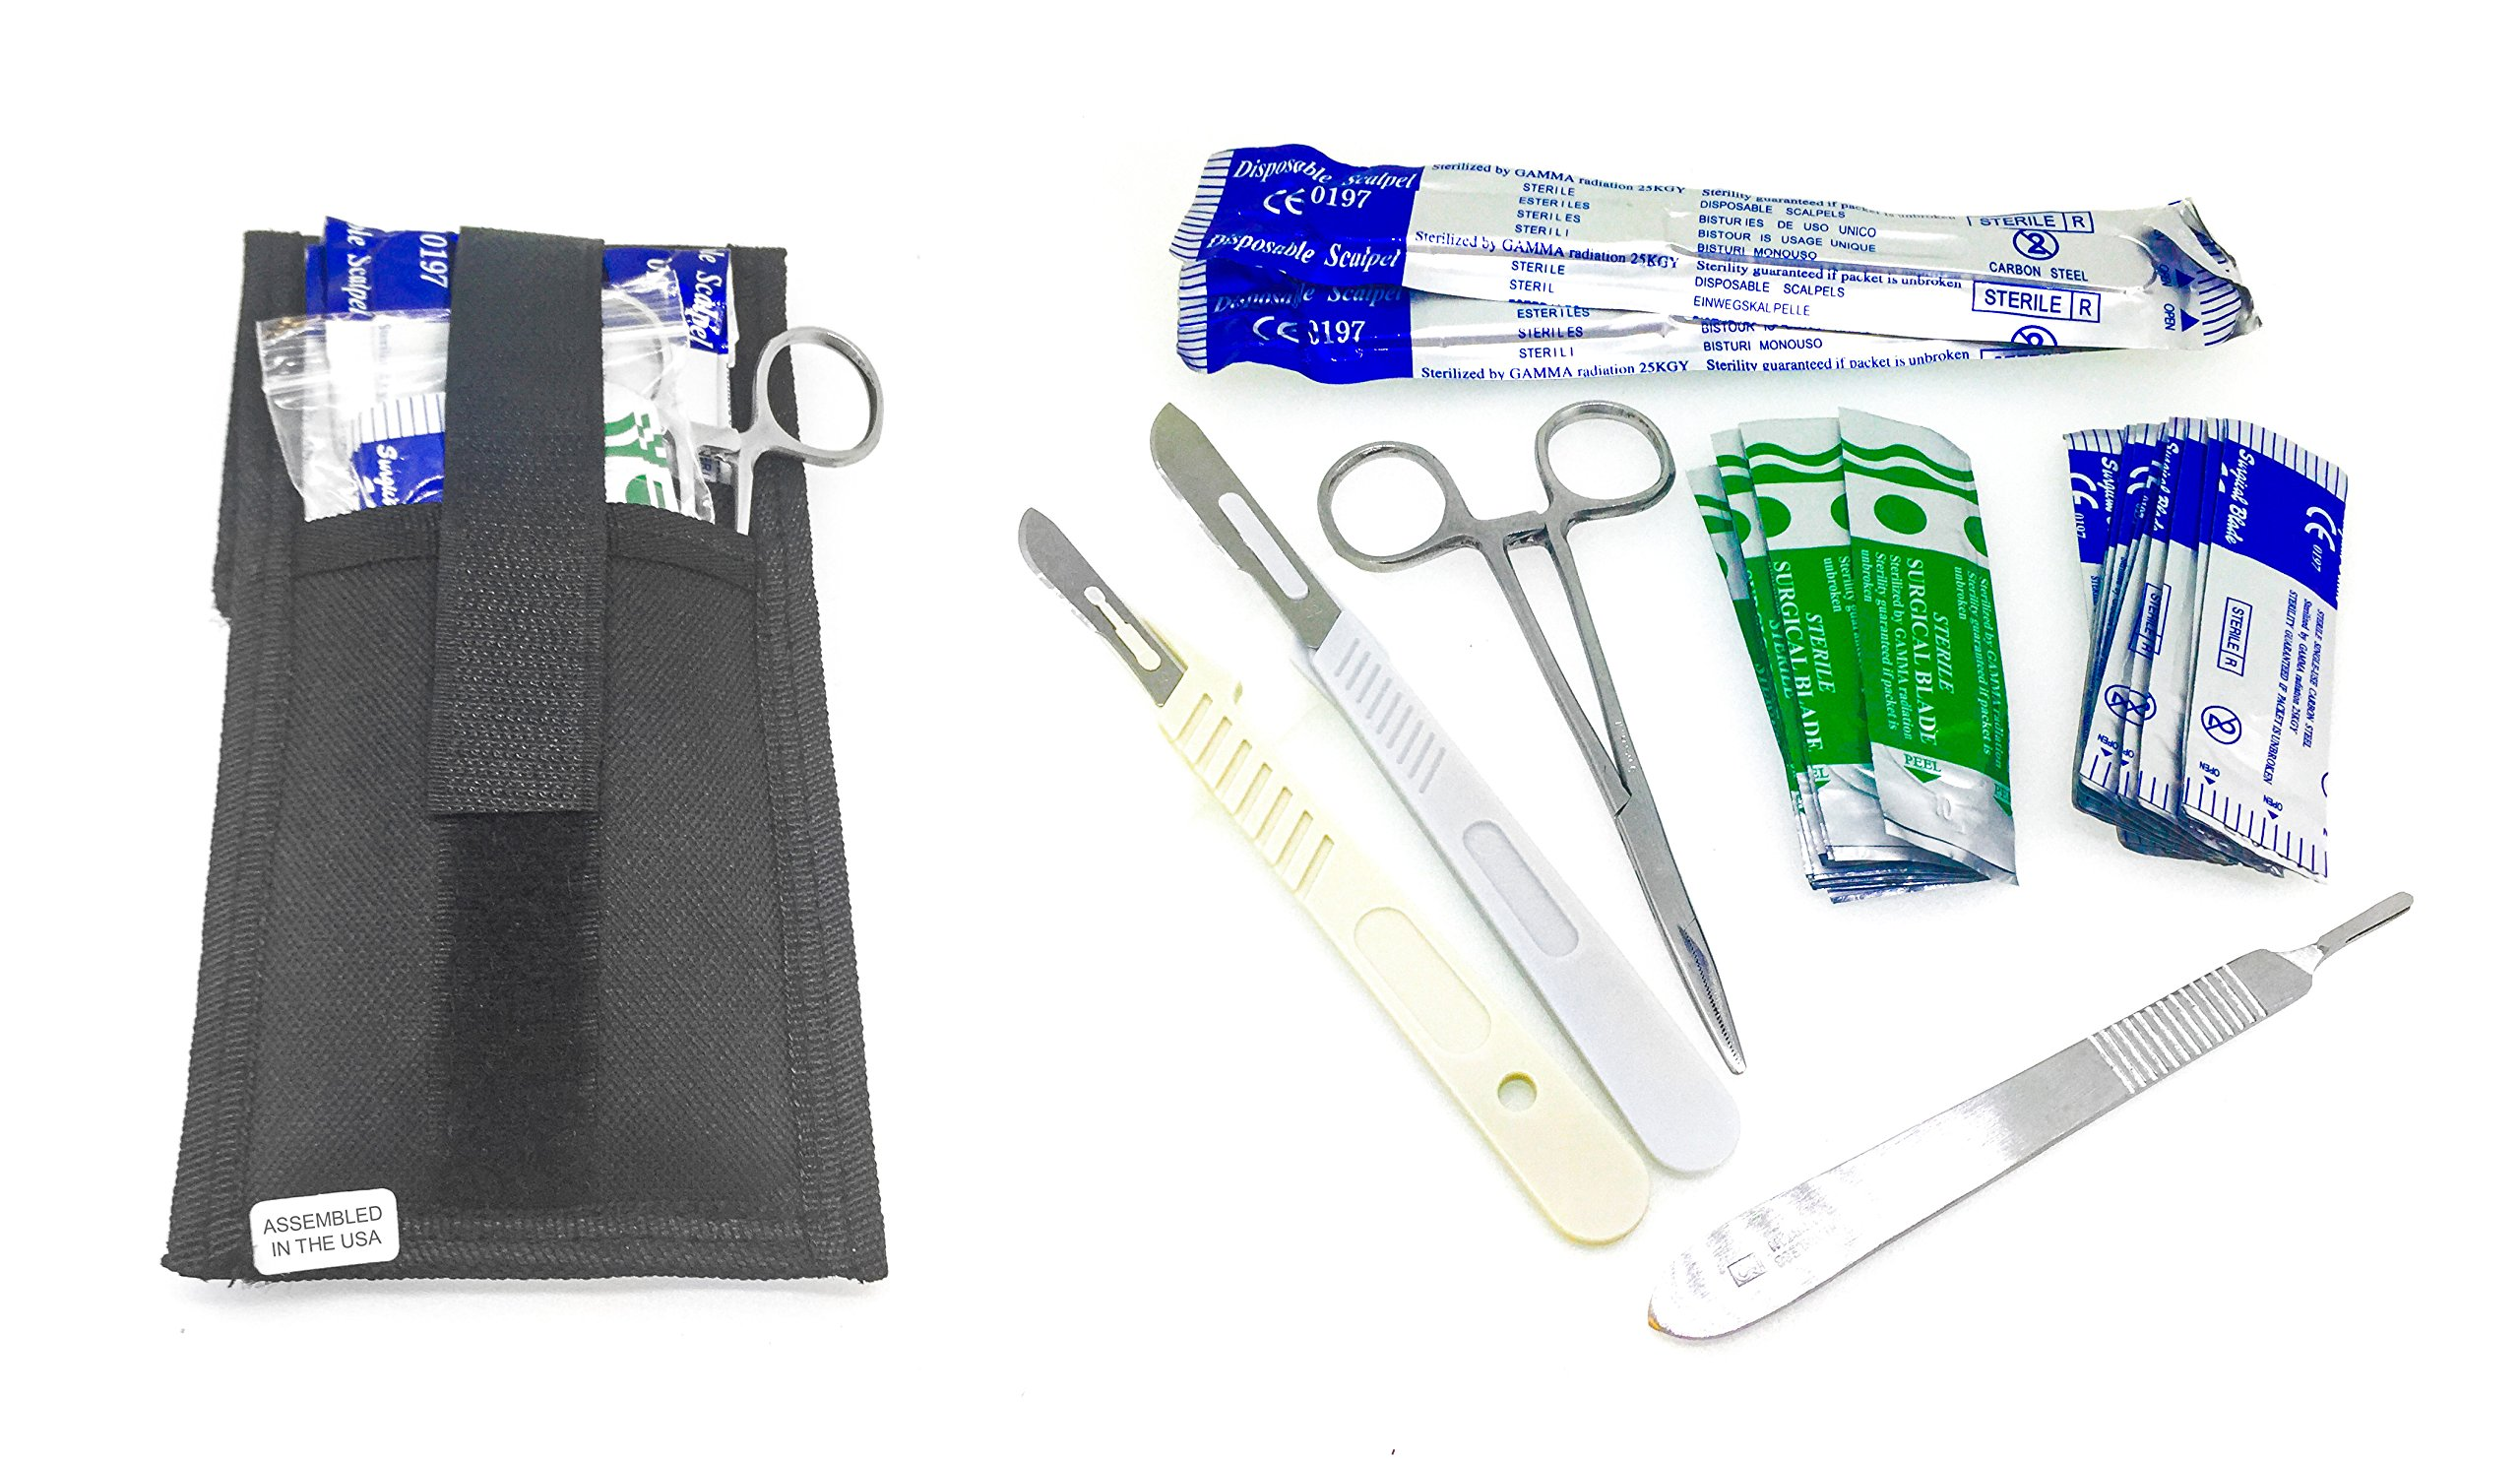 Dermaplaning Cleaning Kit - Disposable Scalpel Blades No. 22, 10 and 11 With Plastic, Metal Handle and Hemostat Blade Removal – Suitable for Dermaplaning and More - Sterile & Individually Foil Wrapped